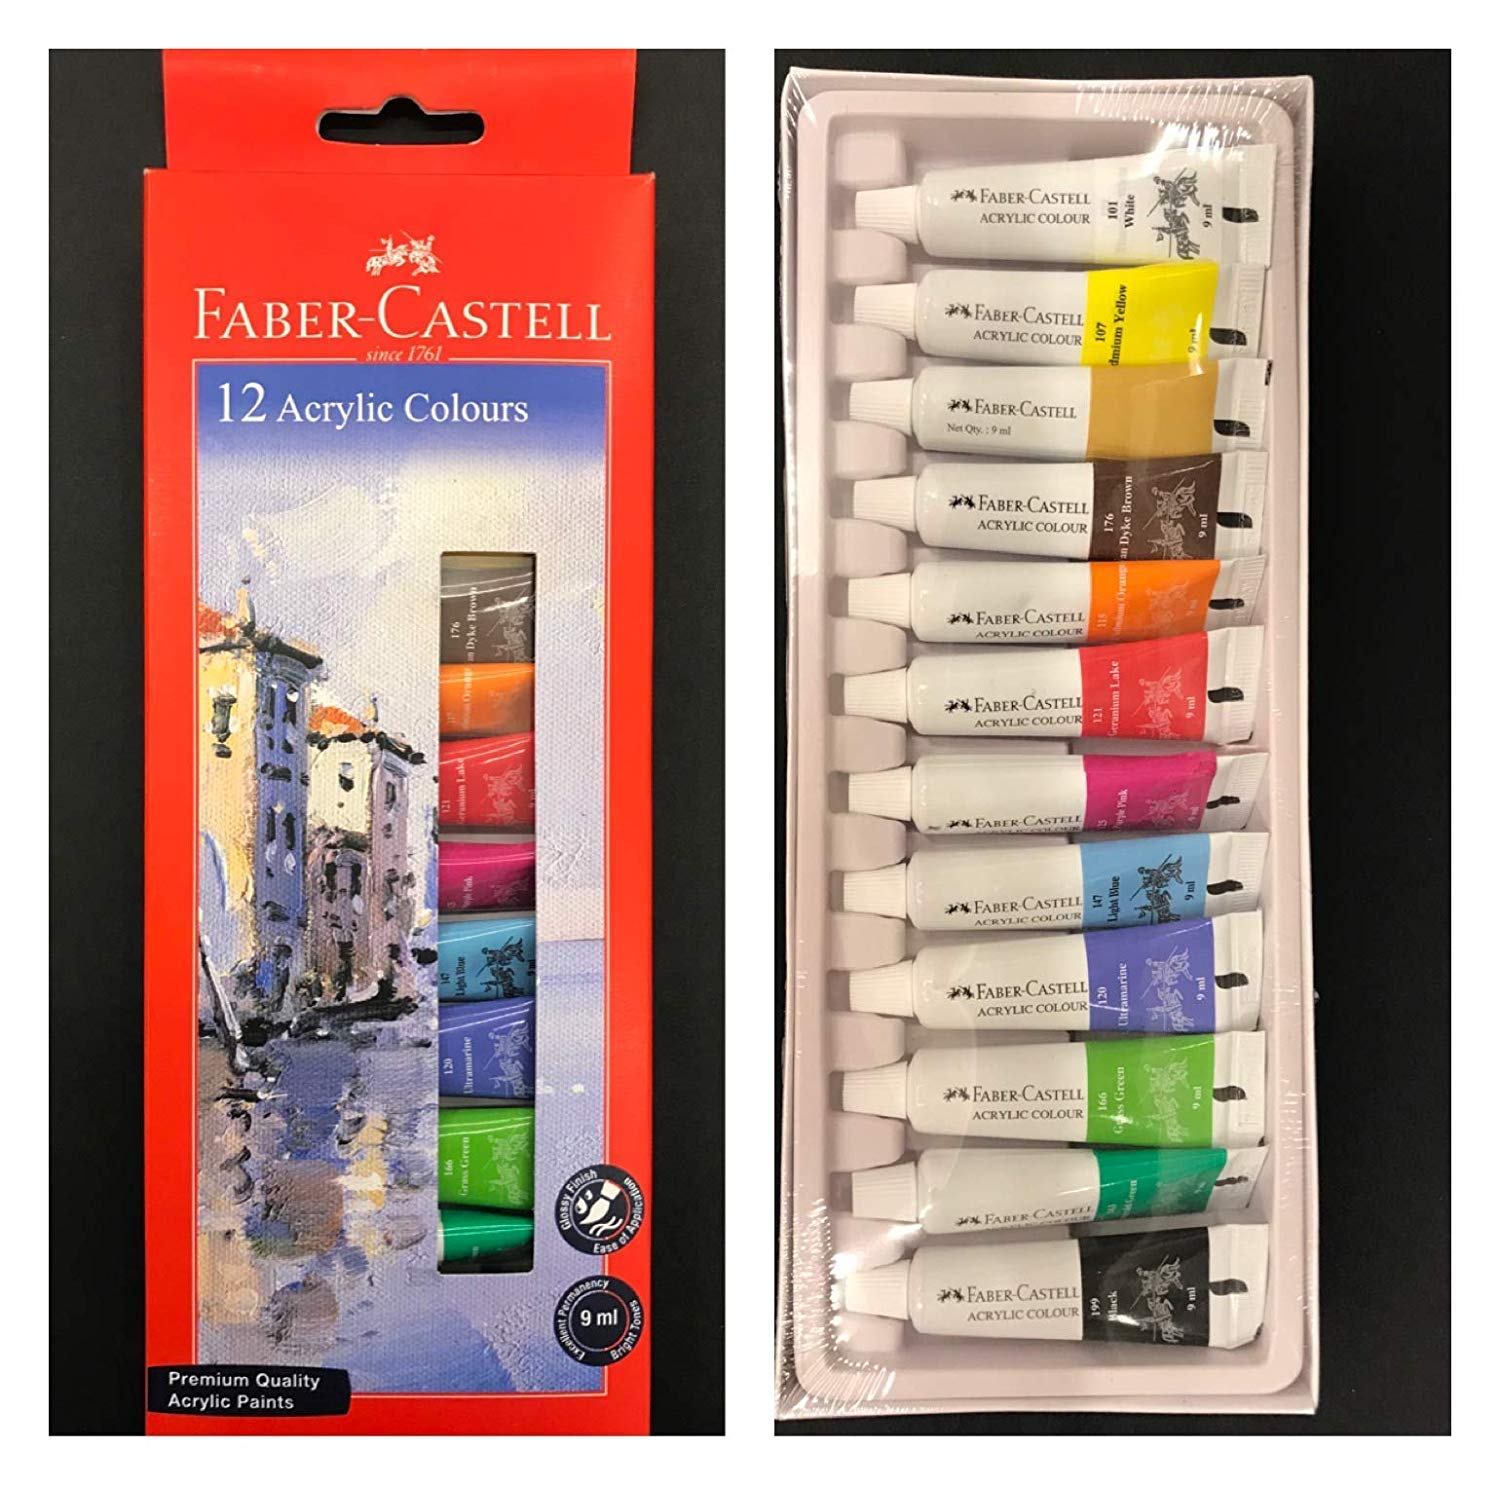 Faber-Castell Student Acrylic Colour Set - Pack of 12